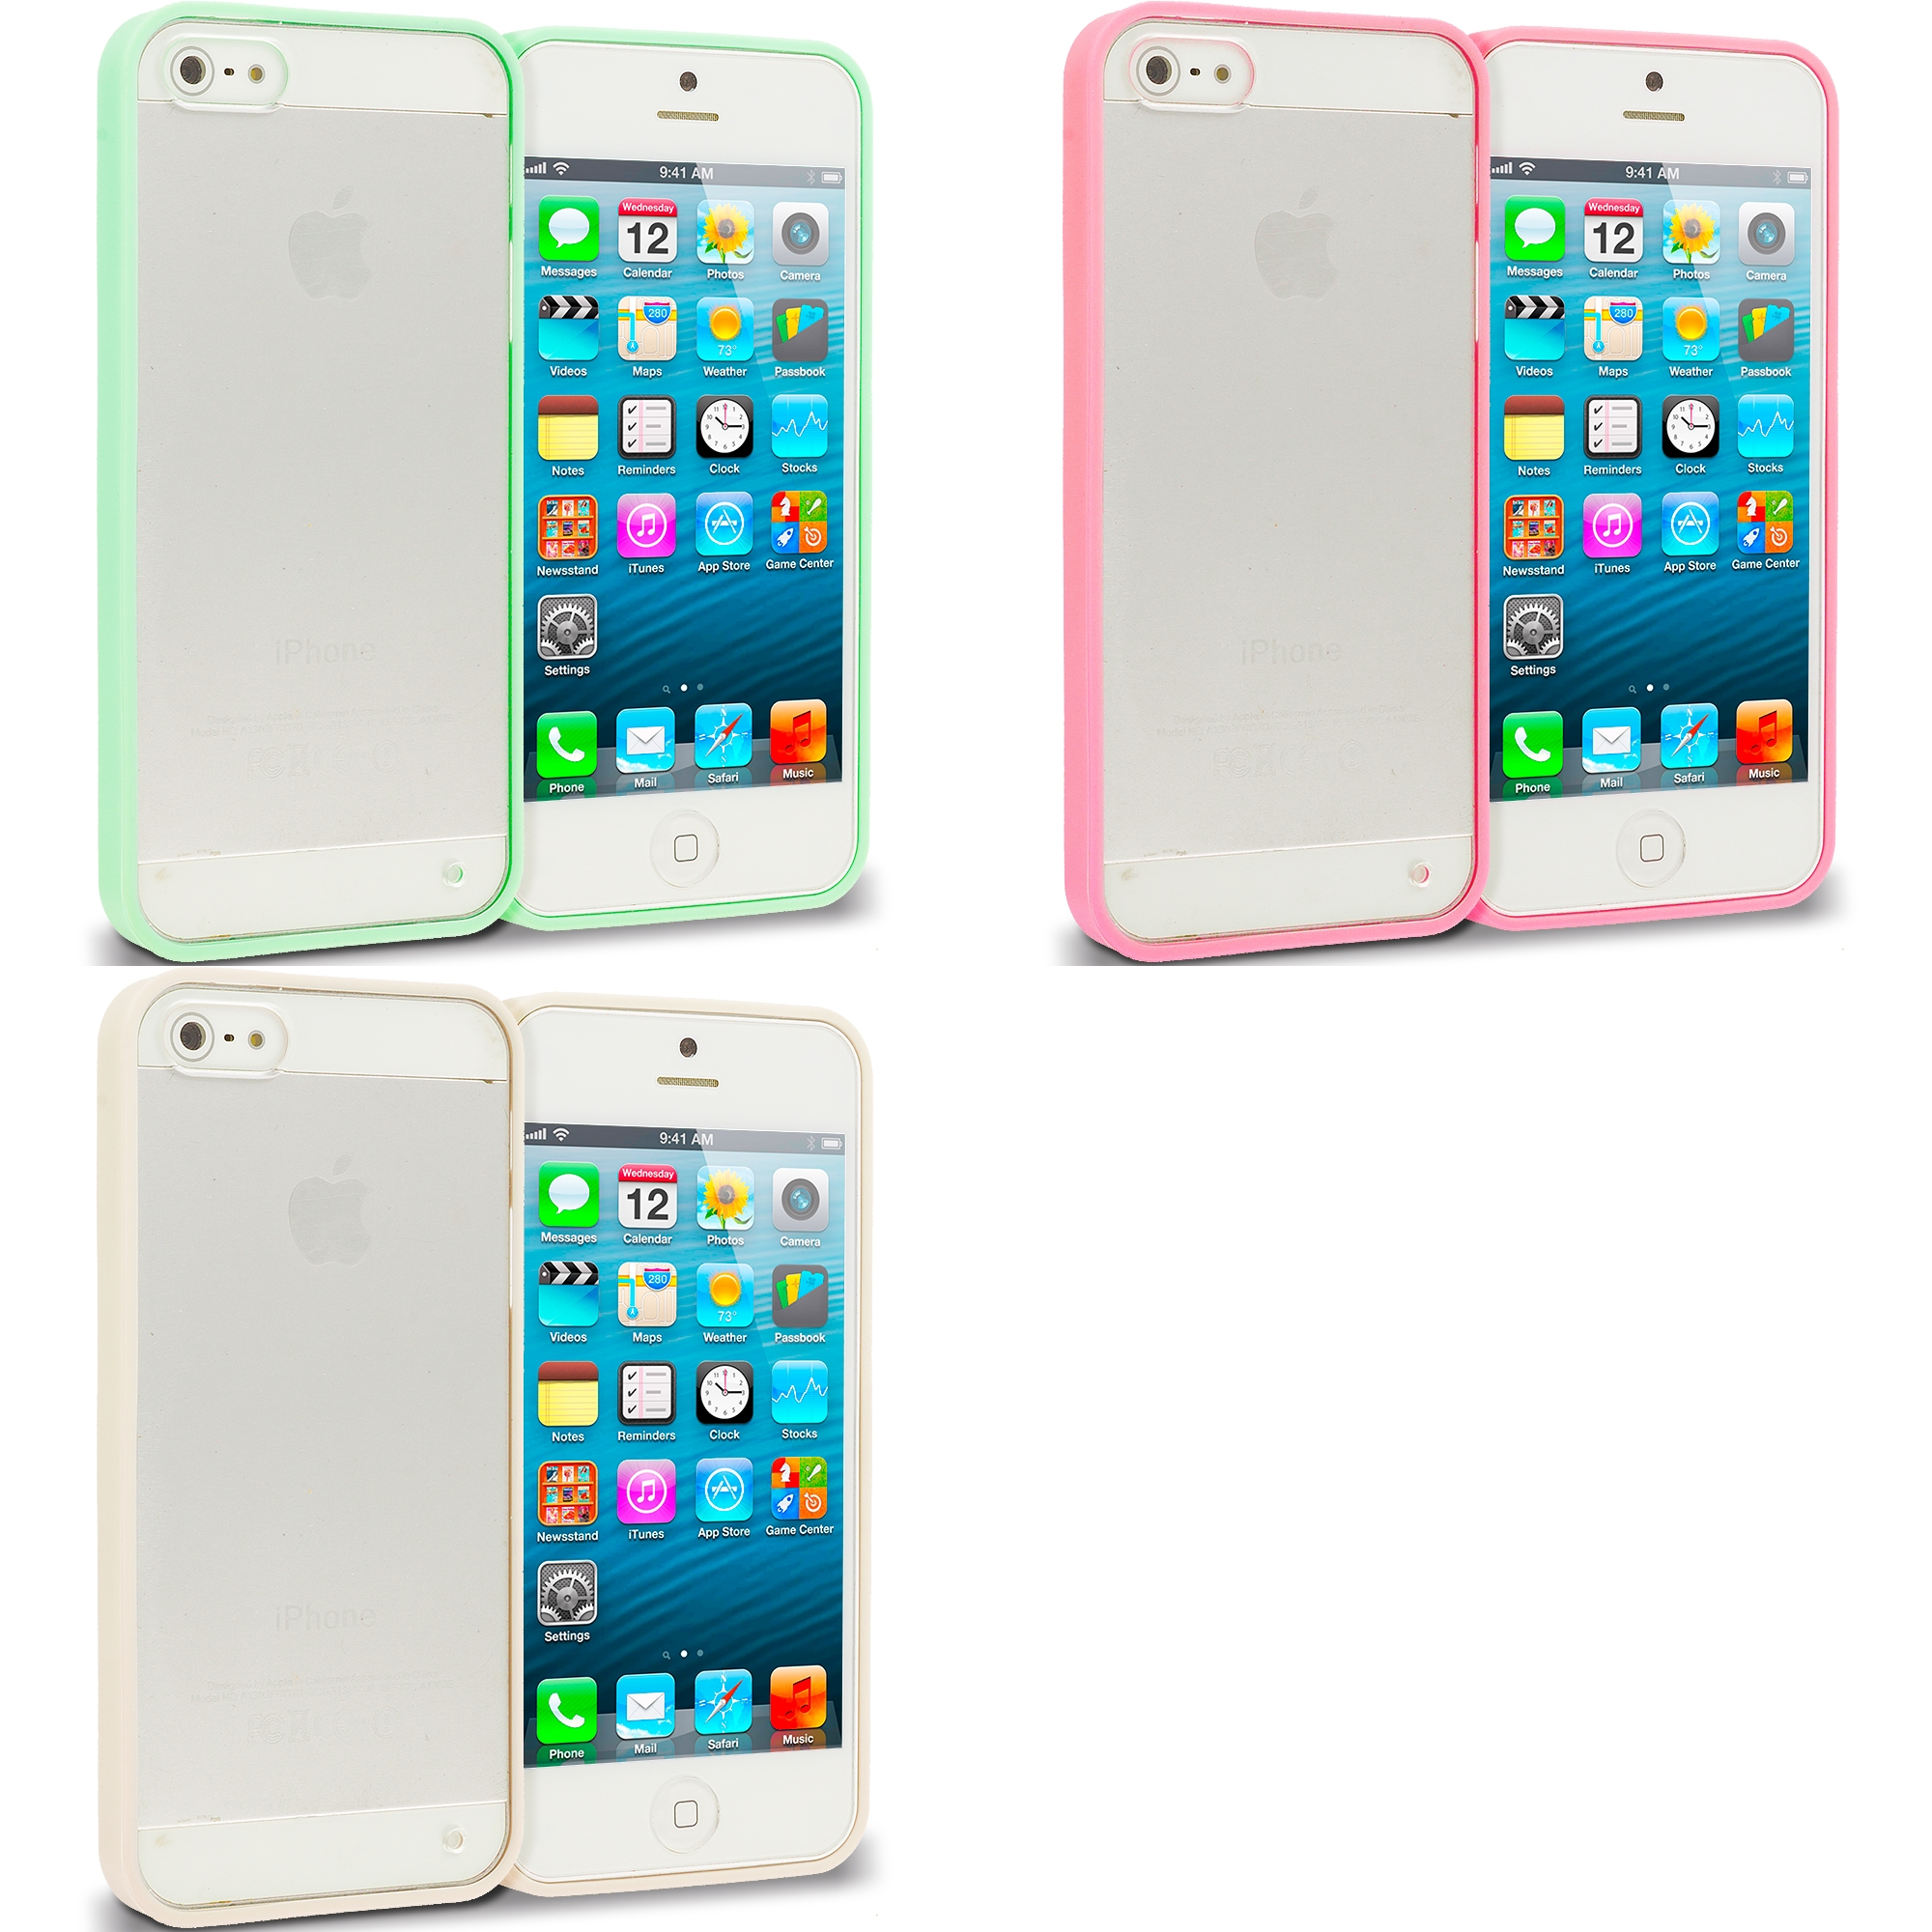 Apple iPhone 5/5S/SE Combo Pack : Green TPU Plastic Hybrid Case Cover